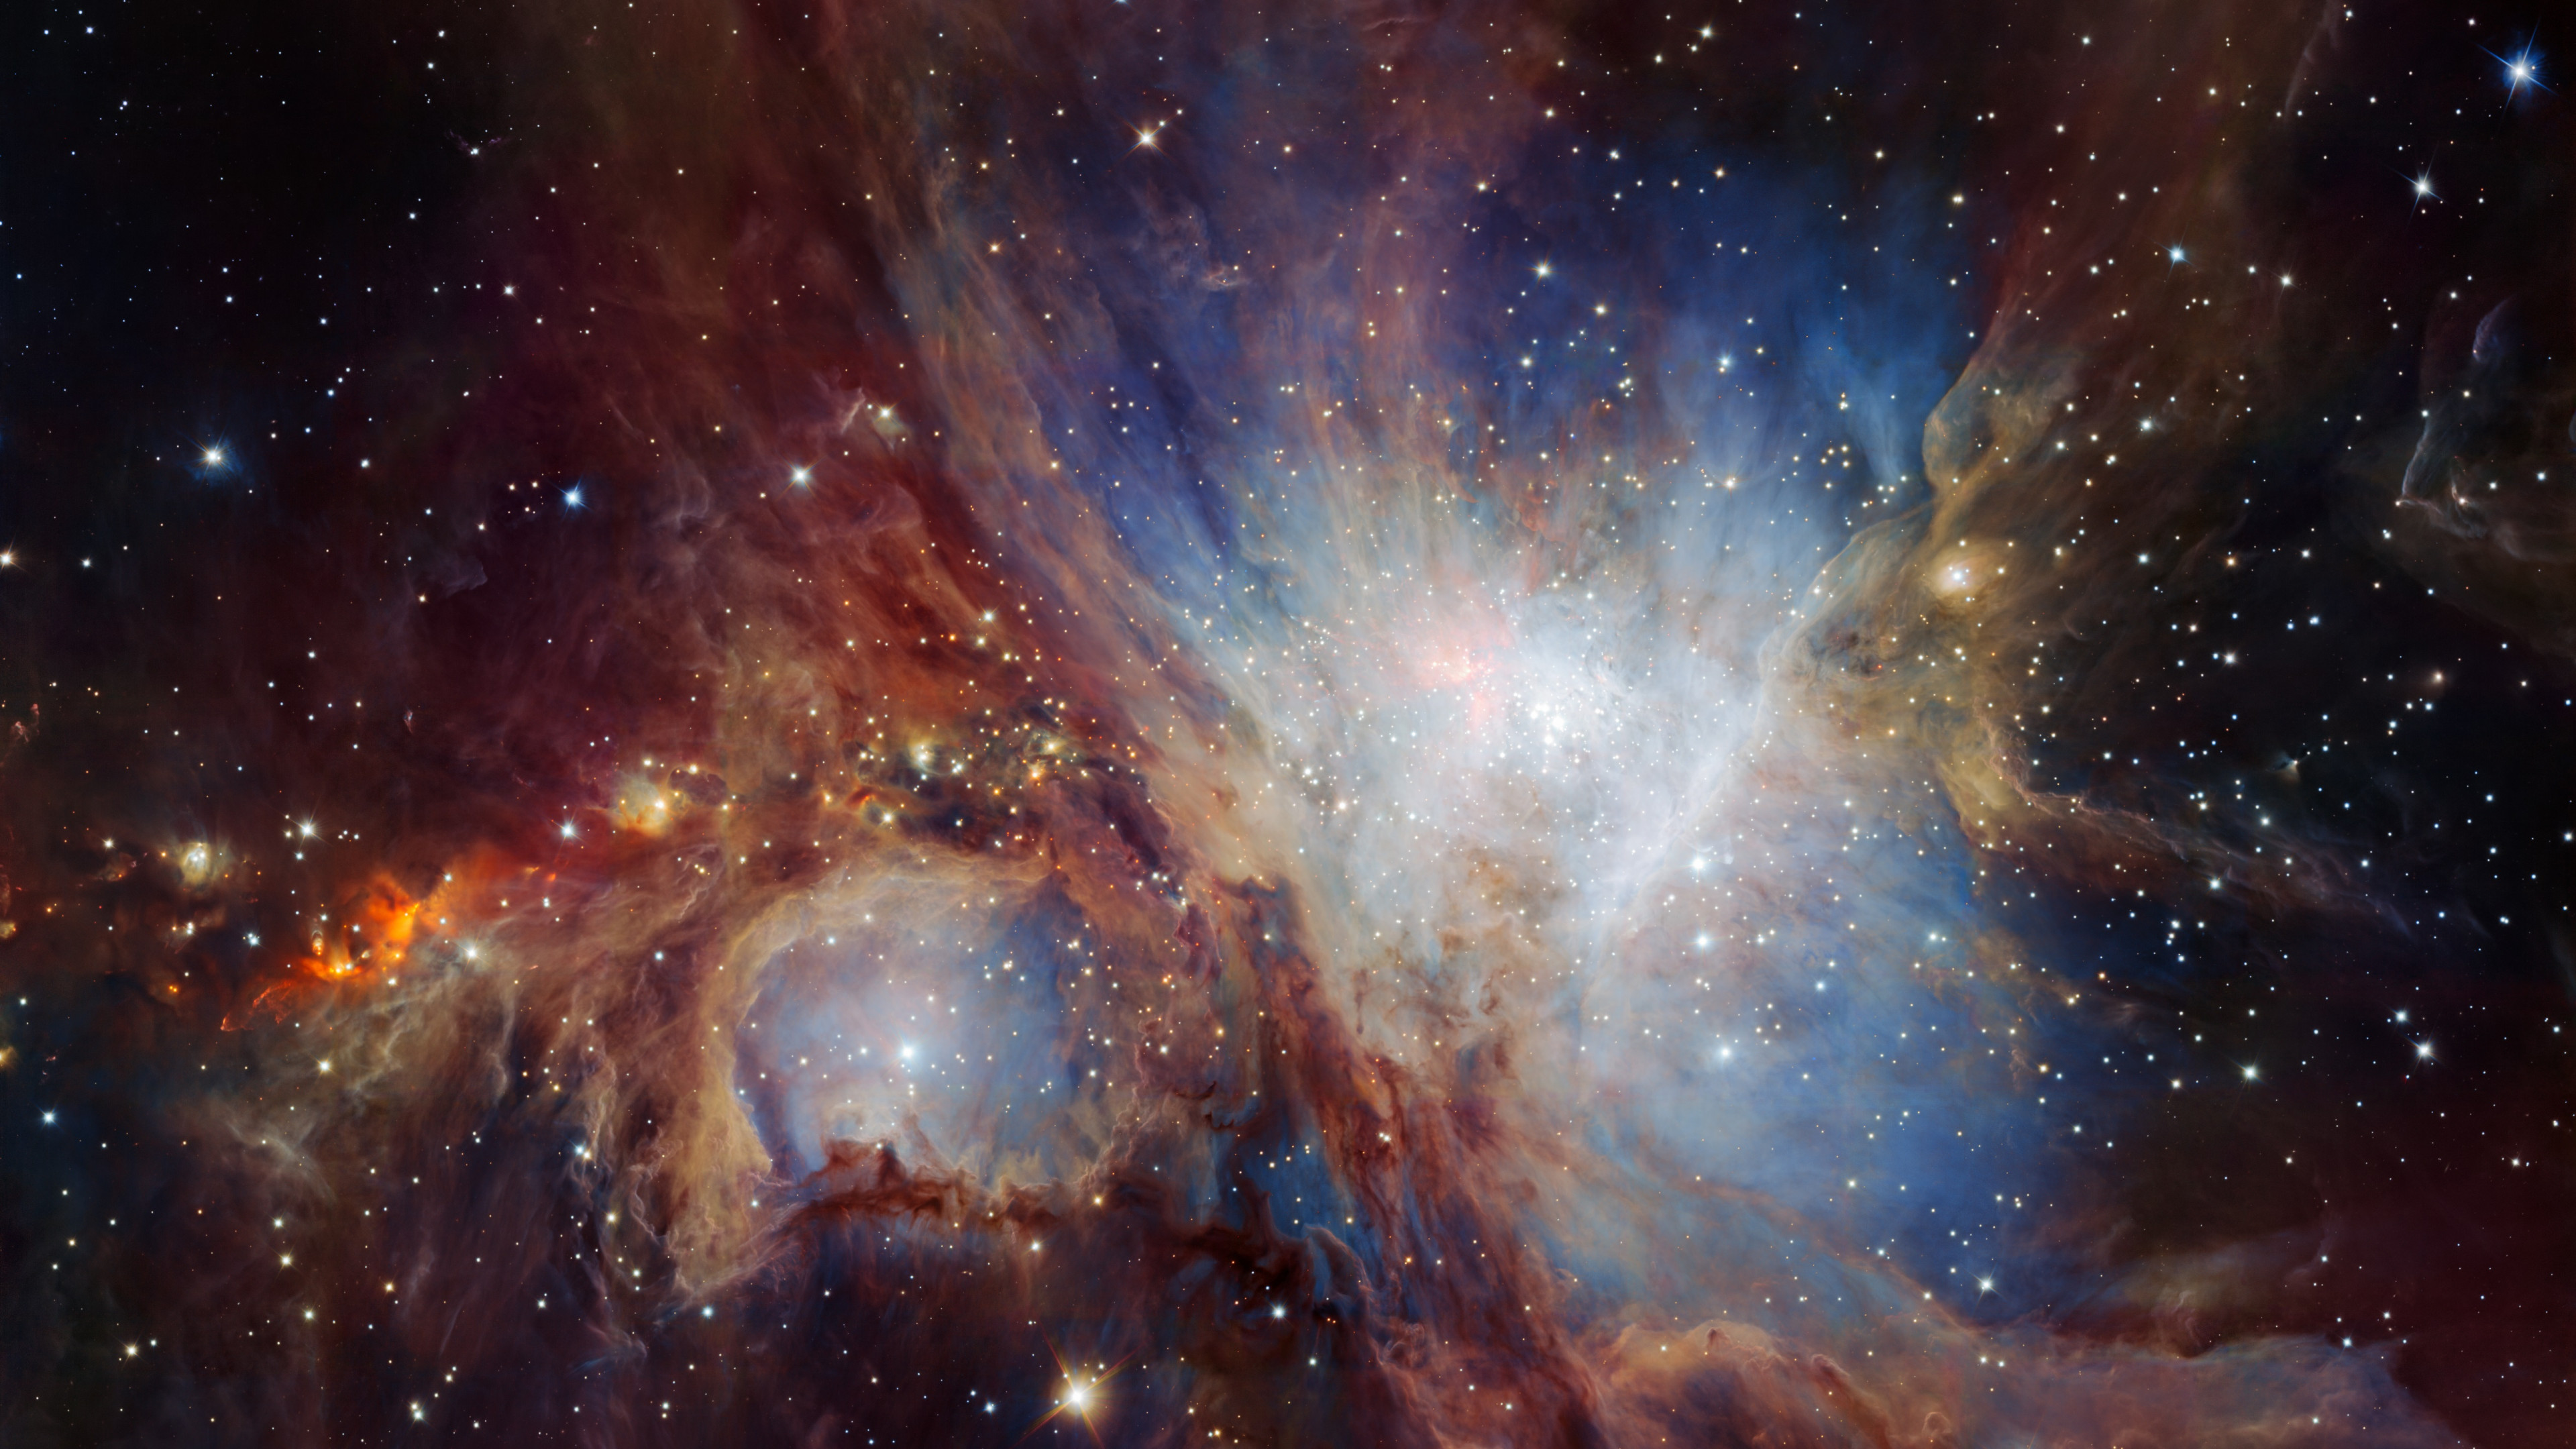 Infrared view of the Orion Nebula | 3840x2160 wallpaper